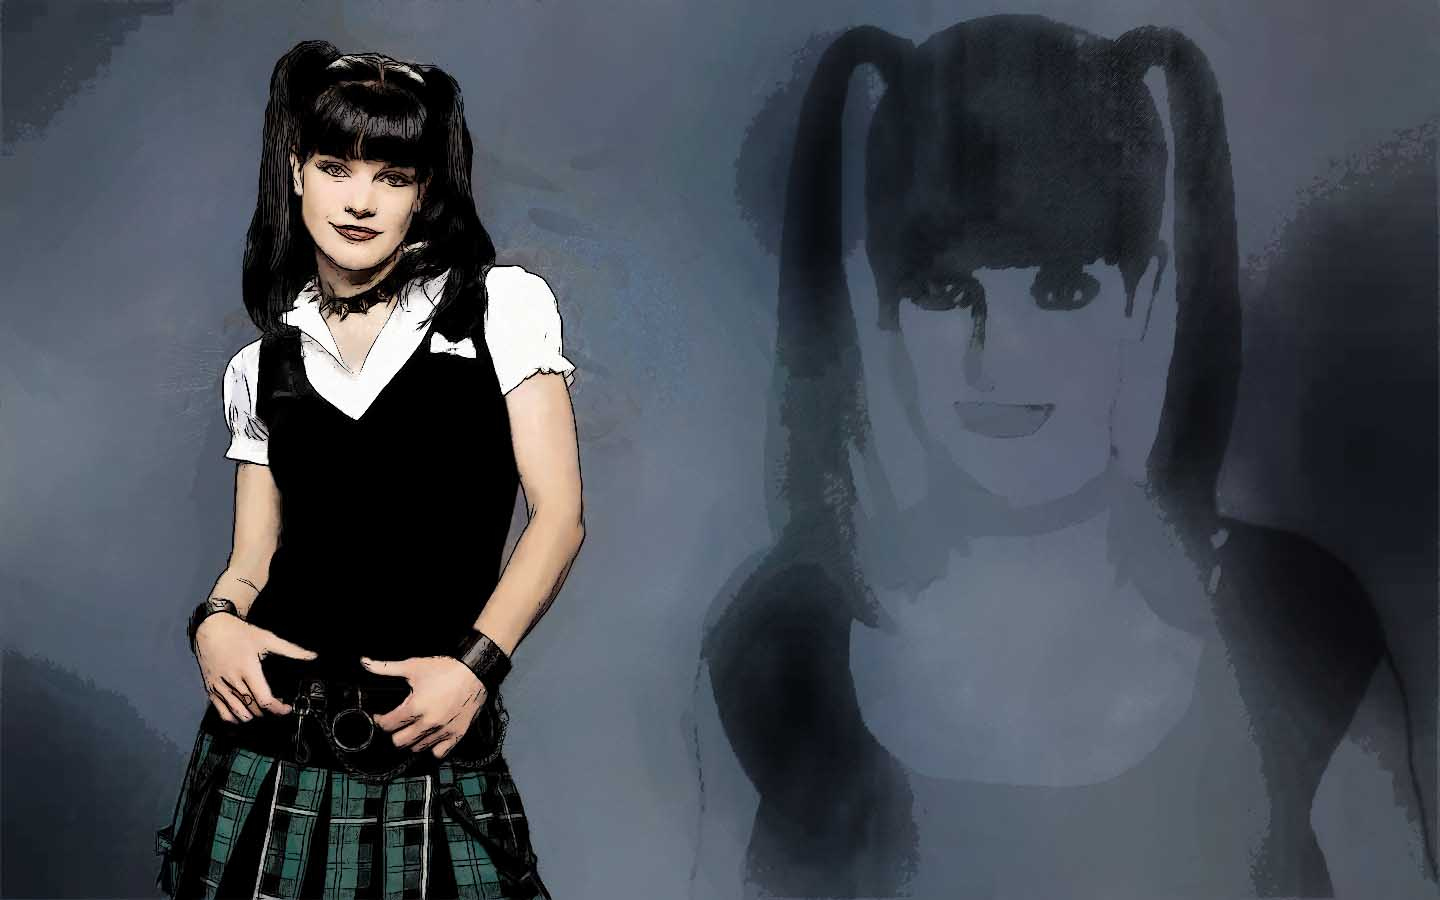 pauley_perrette_abby_sciuto_ncis_desktop_1440x900_hd-wallpaper-590283_DAP_bogfl1.jpg